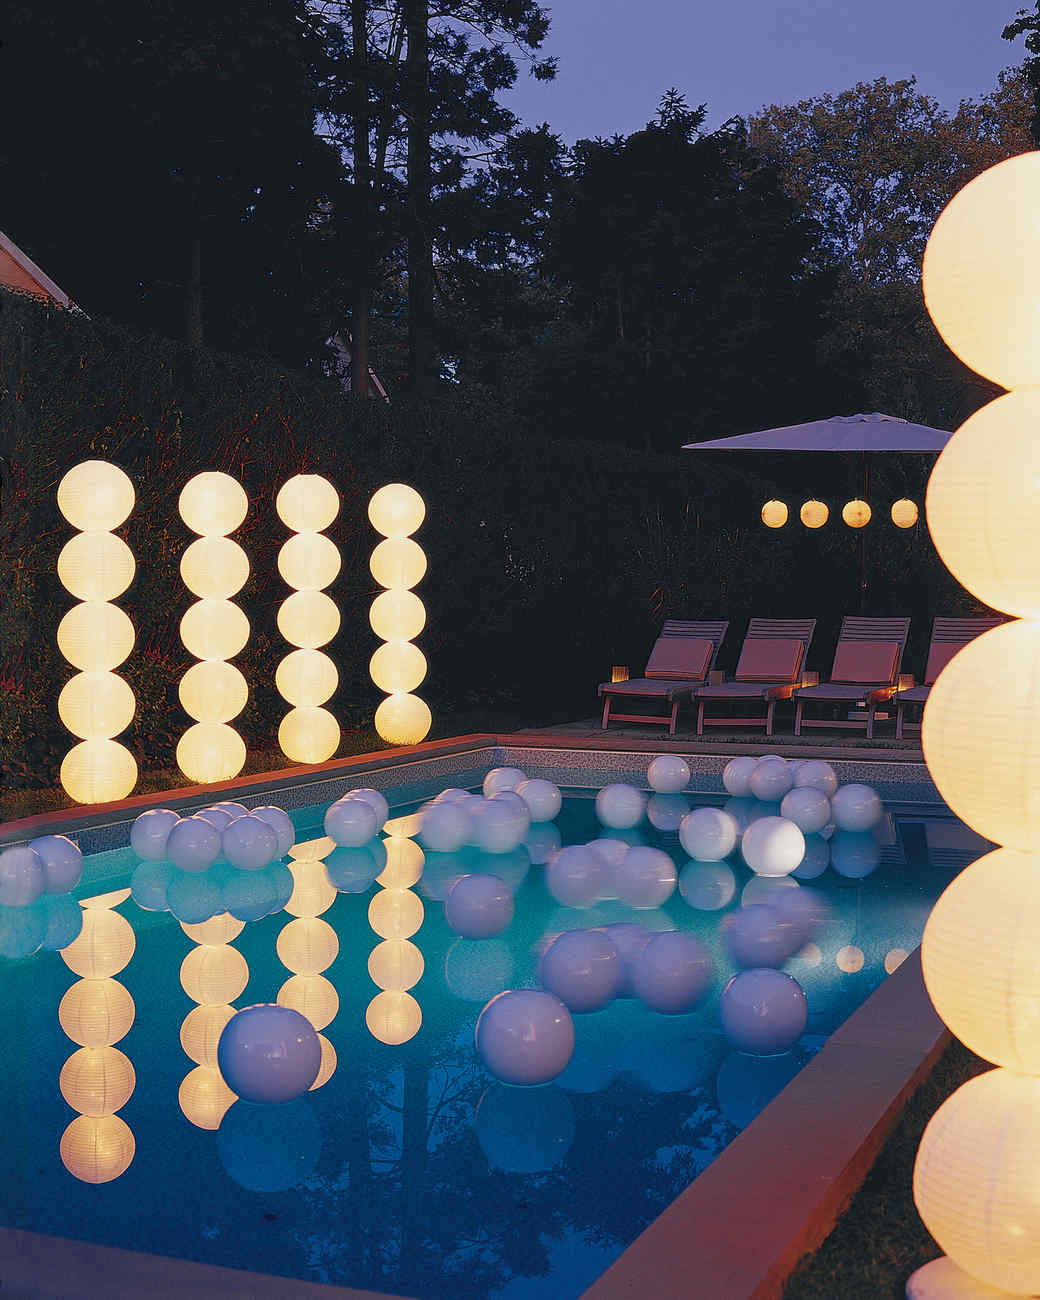 outside lighting ideas for parties. outside lighting ideas for parties